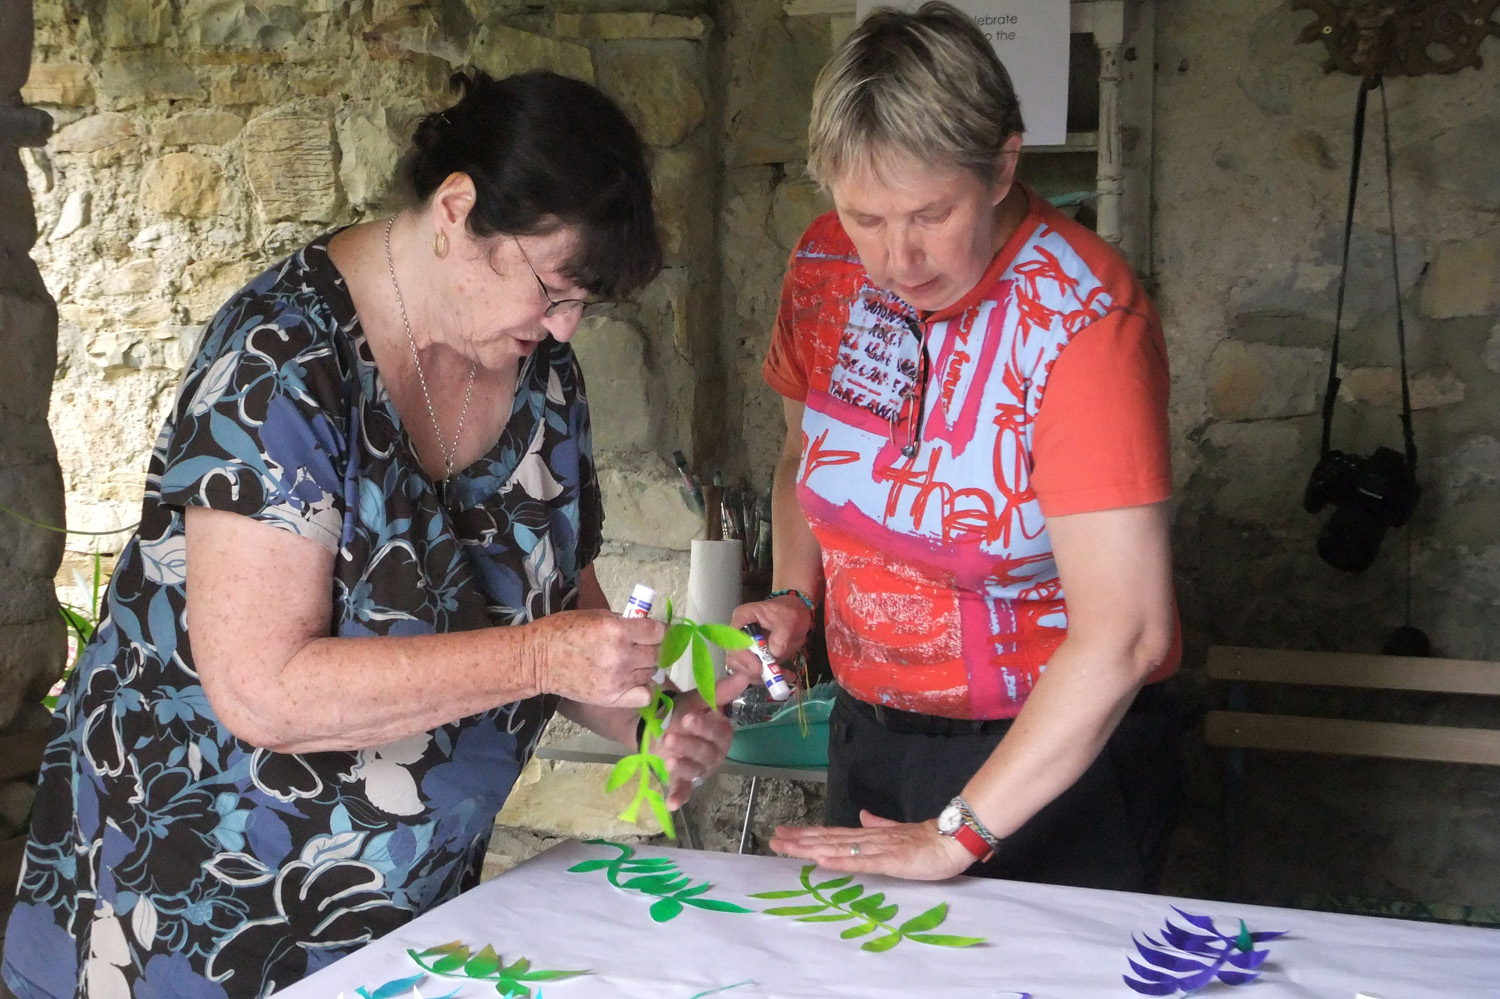 Dilys and Stoney gluing